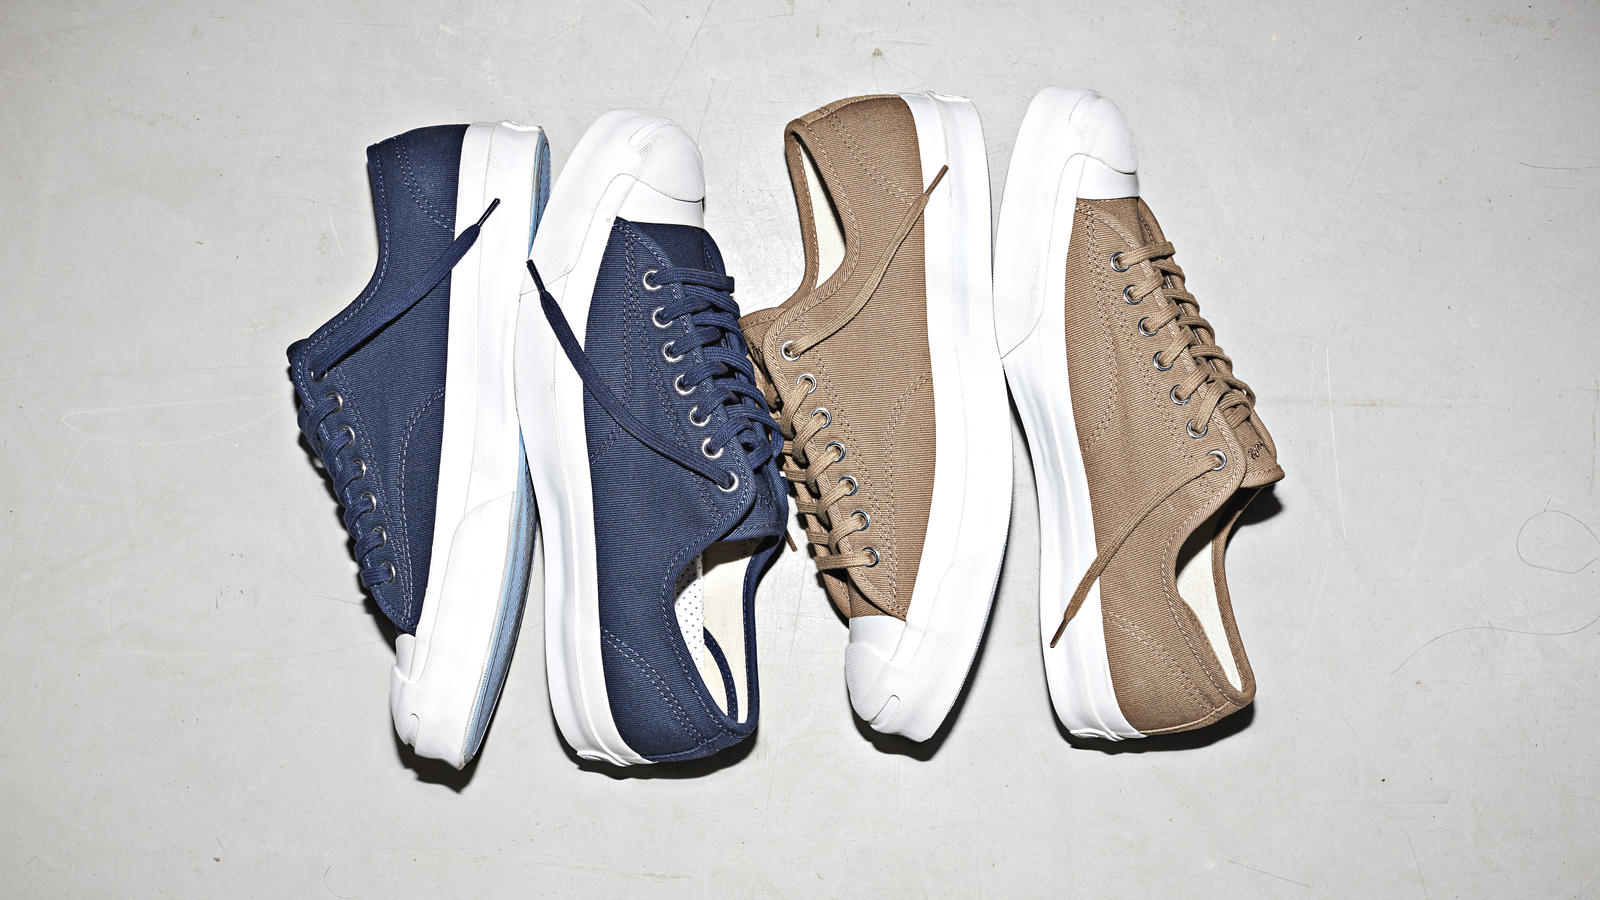 f1155da8423 CONVERSE JACK PURCELL EXPANDS SIGNATURE COLLECTION WITH BRAND-NEW ...